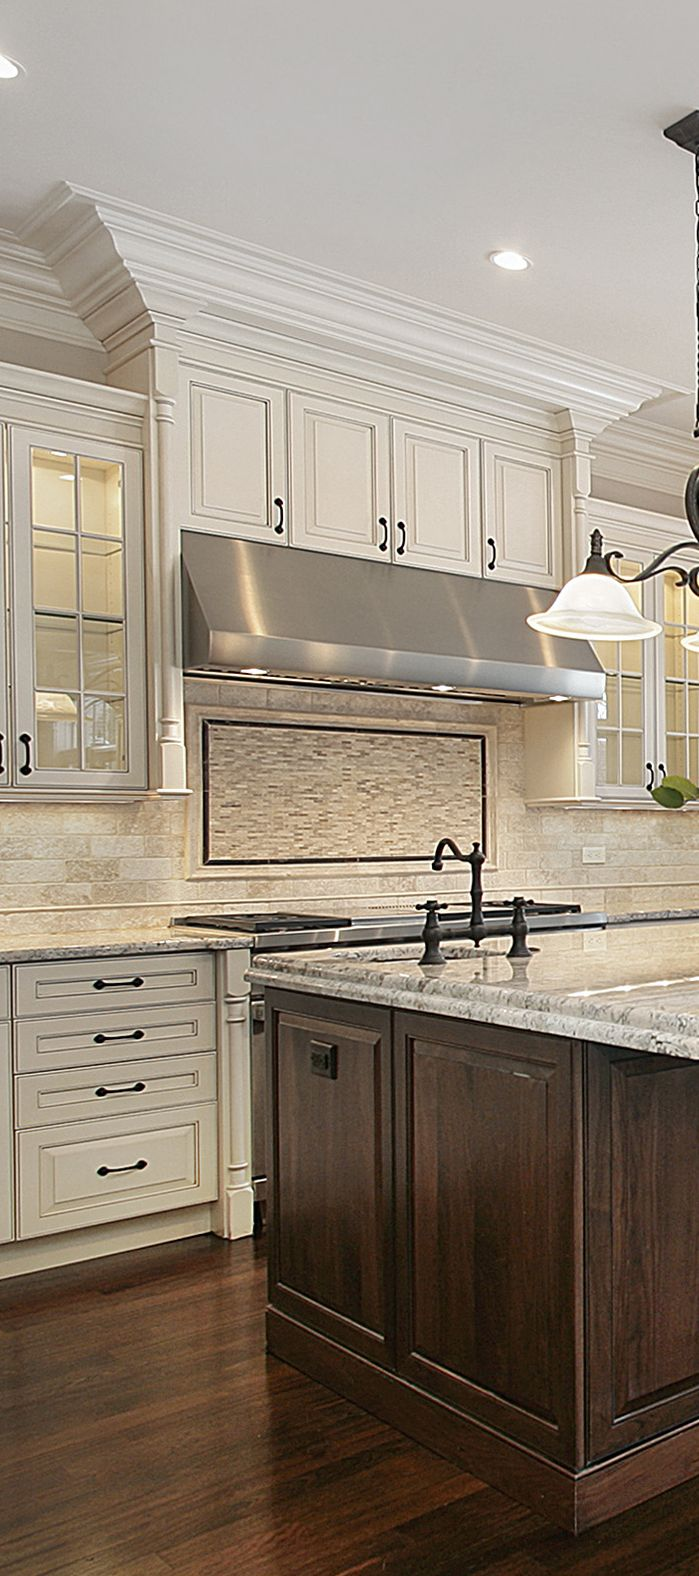 Off white kitchen with large stained wood island